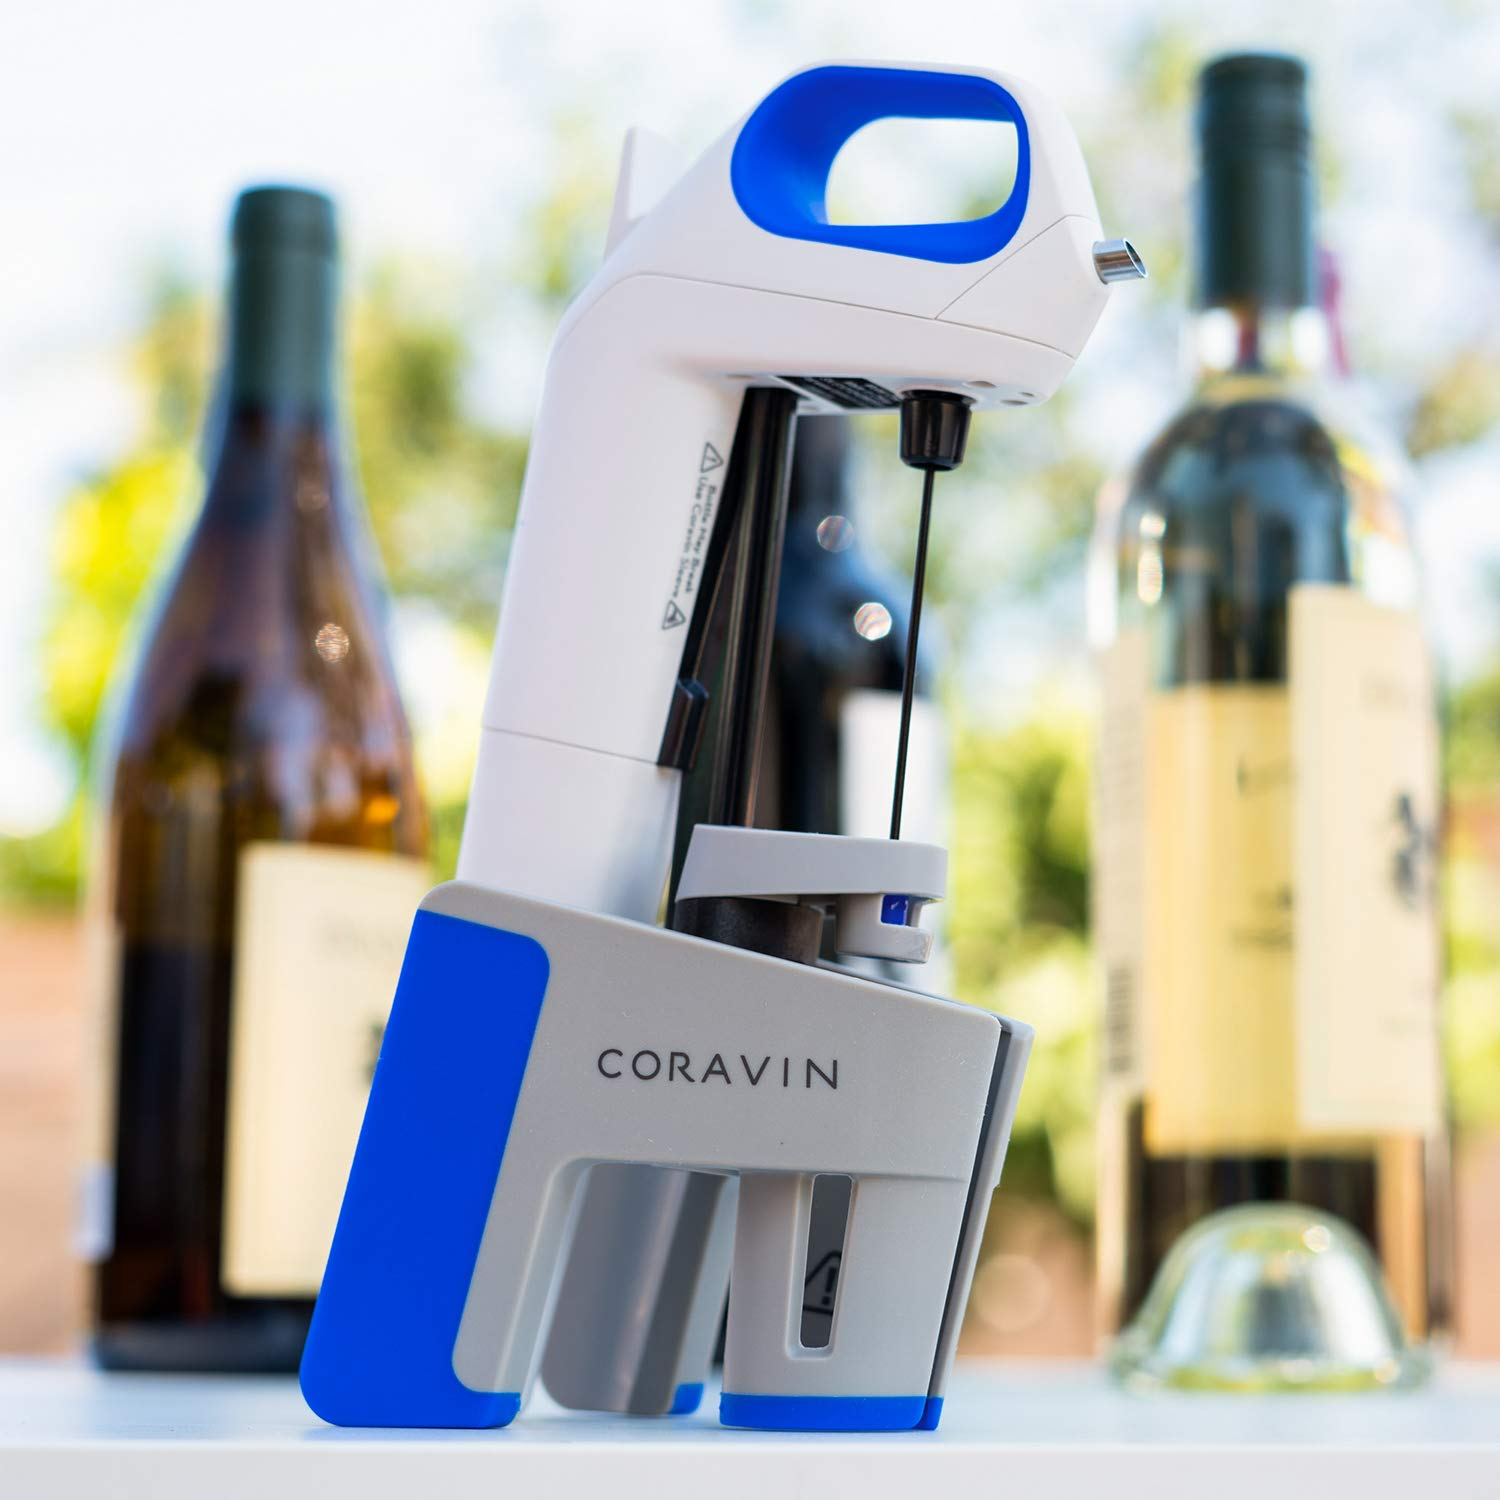 Coravin wine preservation system: A great last-minute food gift for dad you can get from Amazon Prime | coolmomeats.com